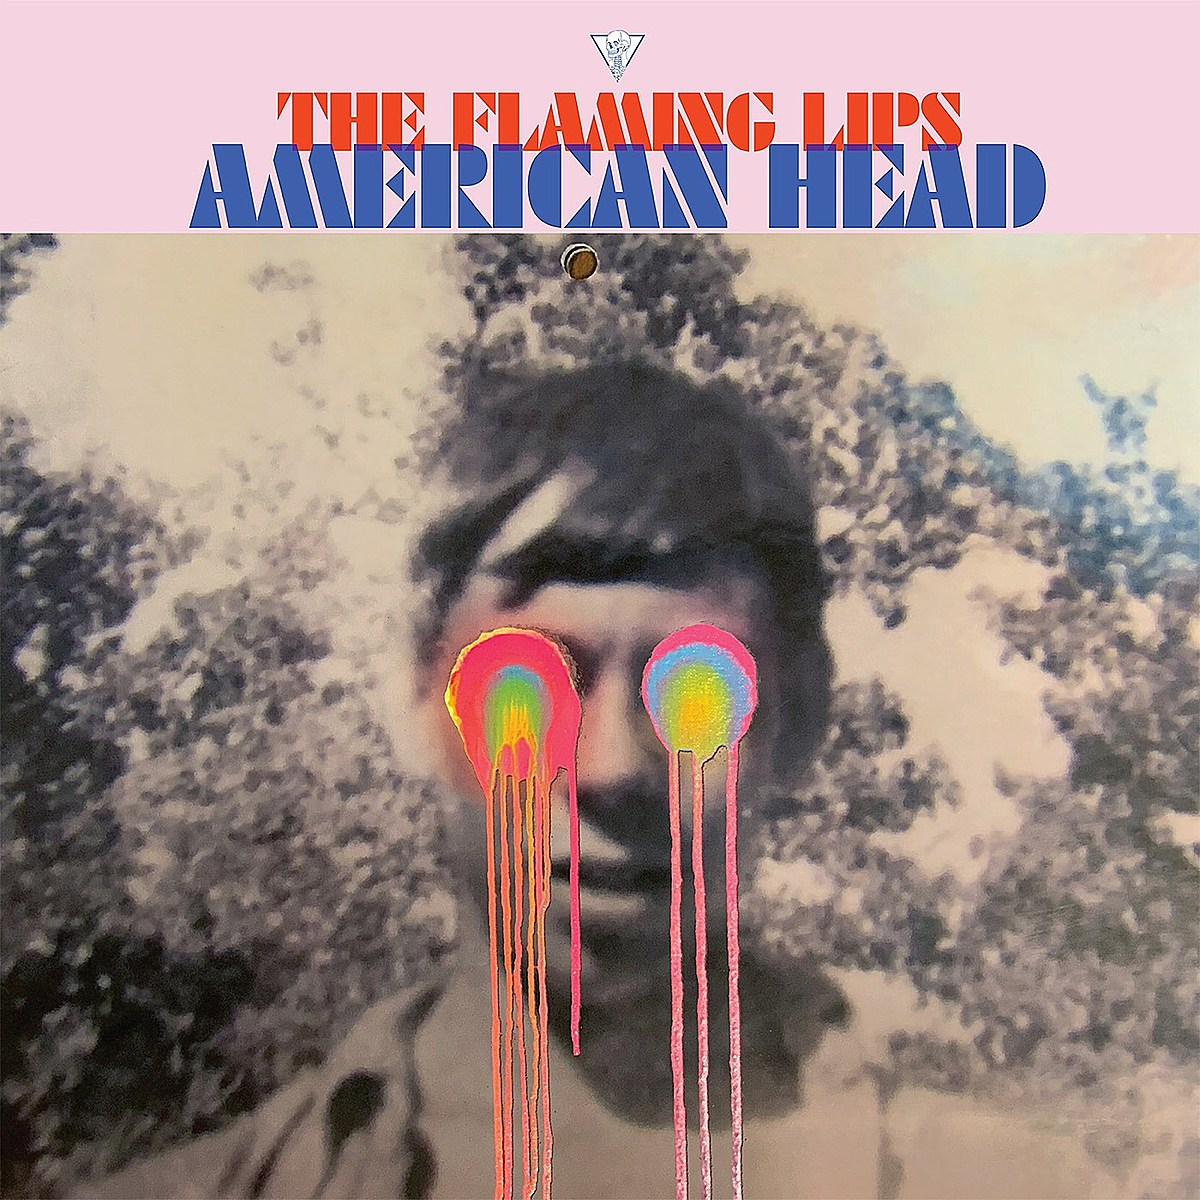 Review: The Flaming Lips' 'American Head' is their most satisfying album in a decade